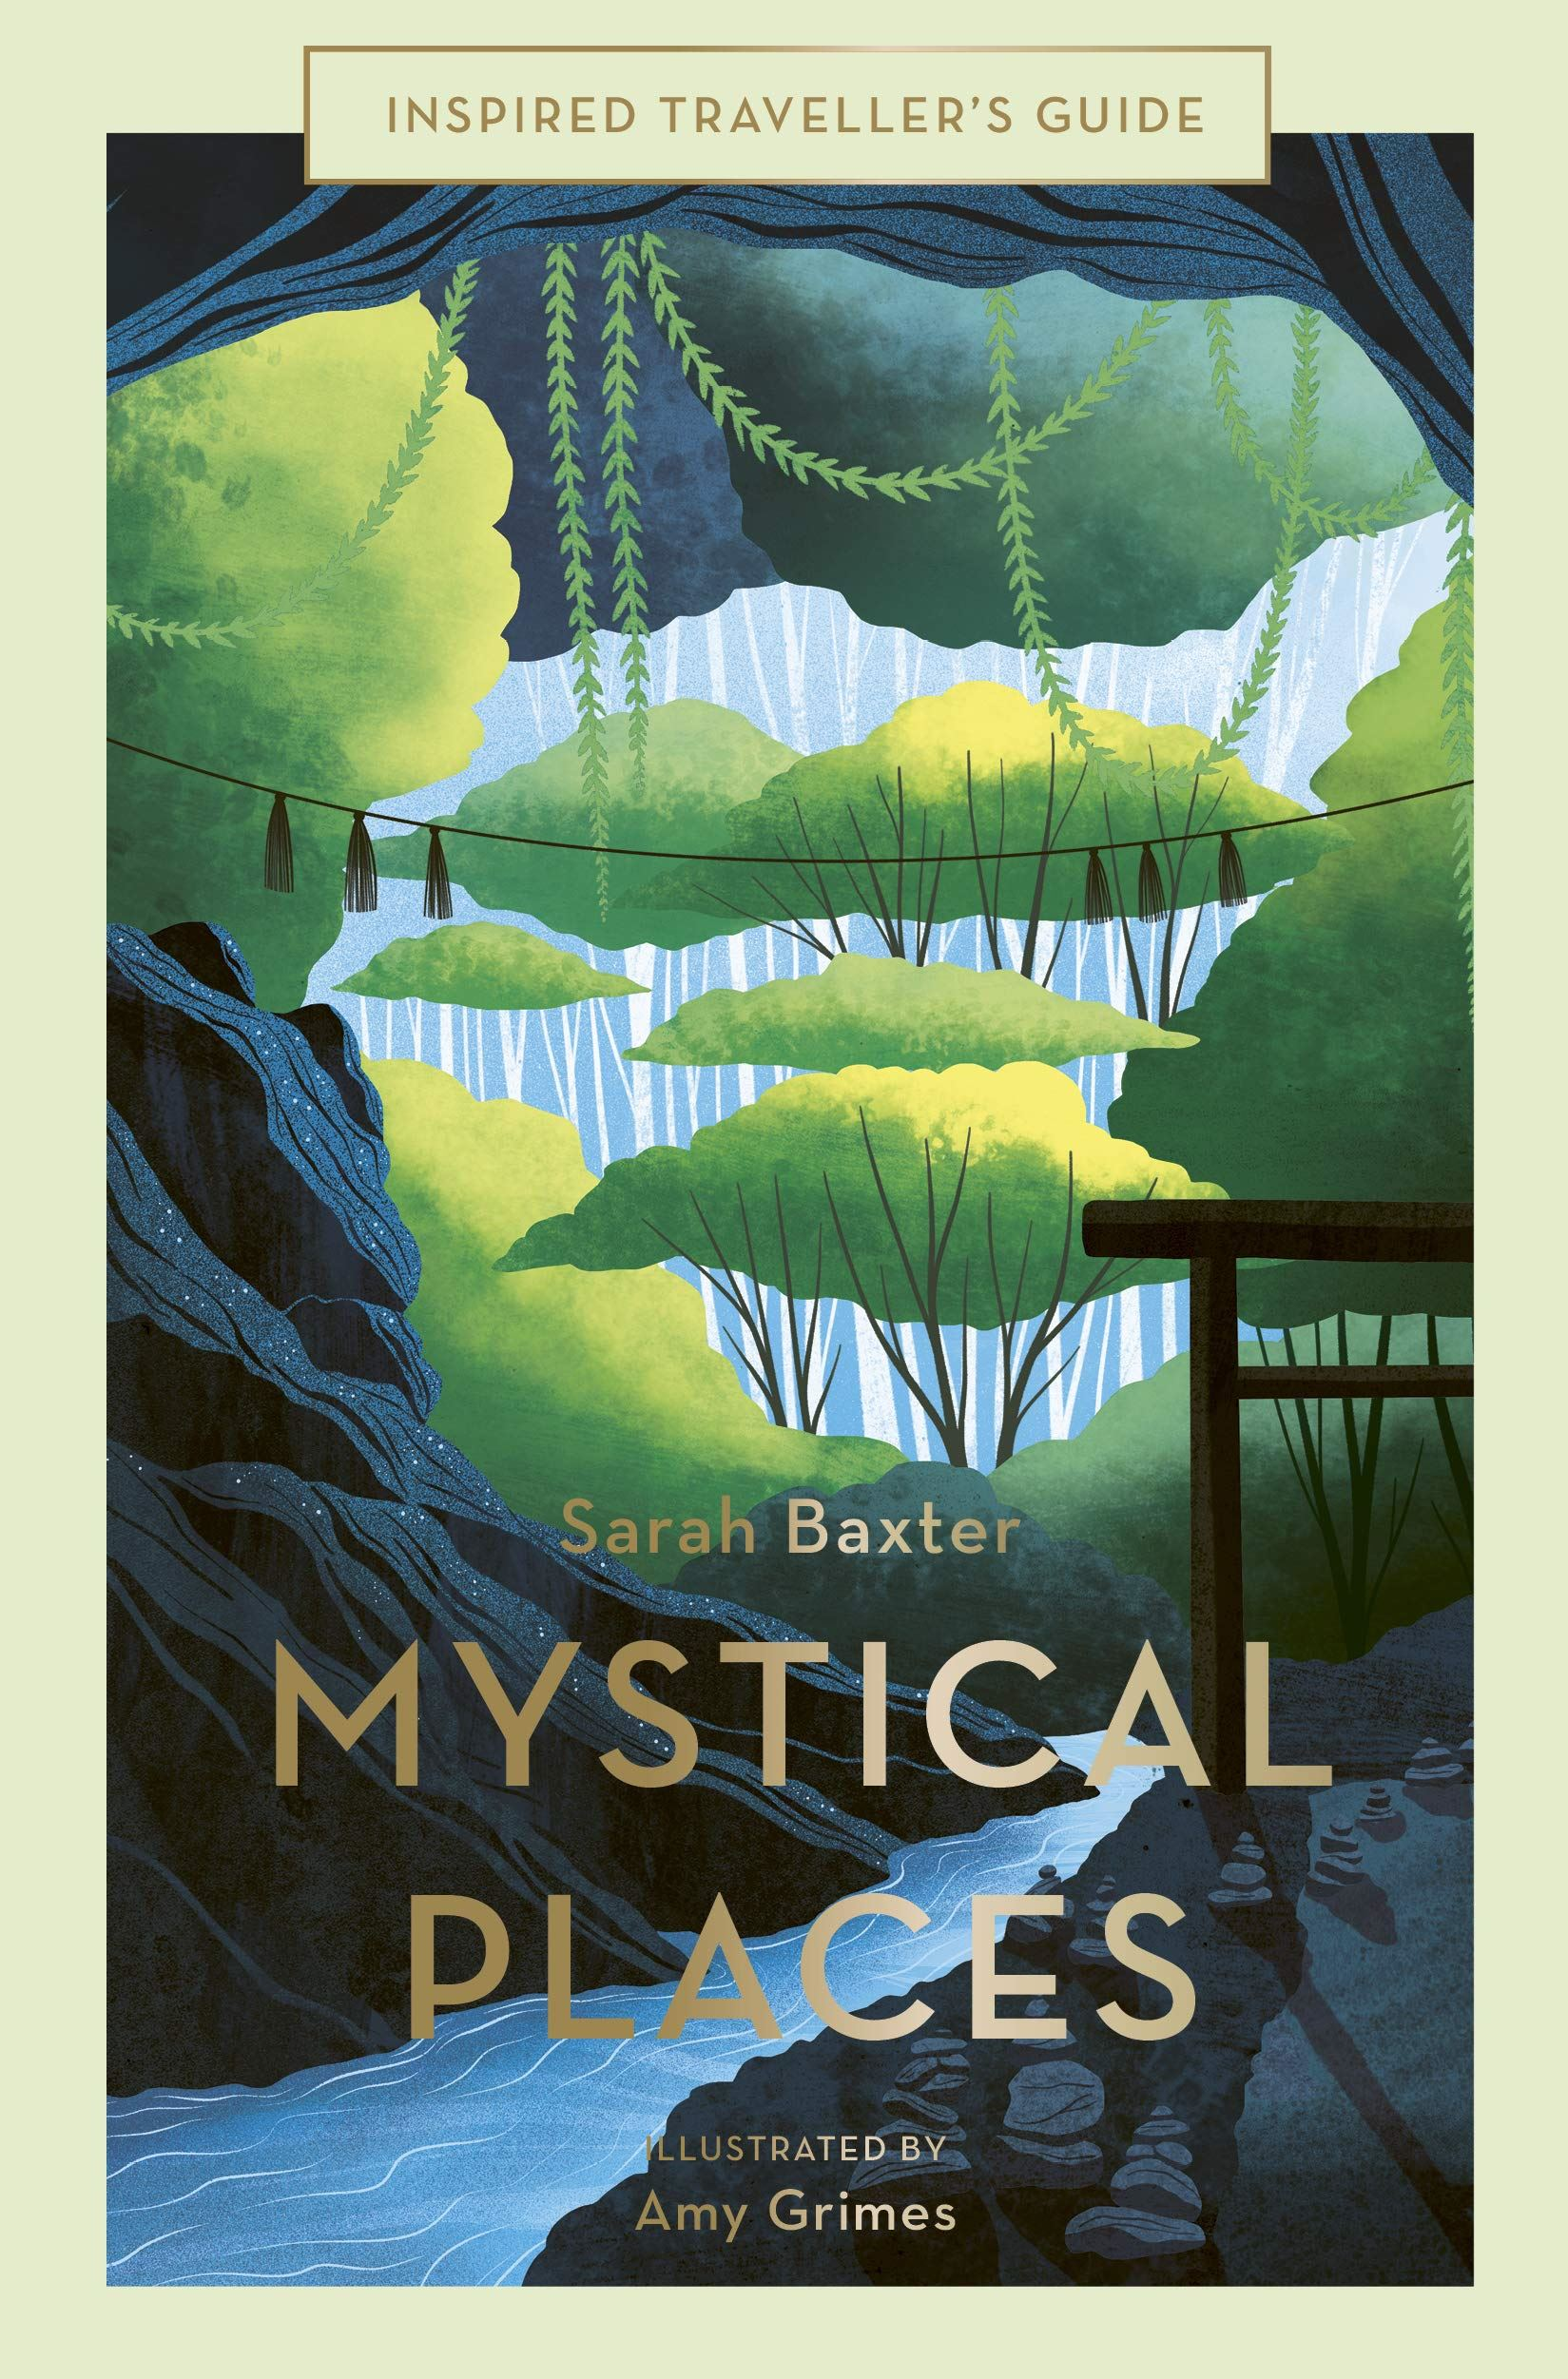 Inspired Travellers Guide: Mystical Places